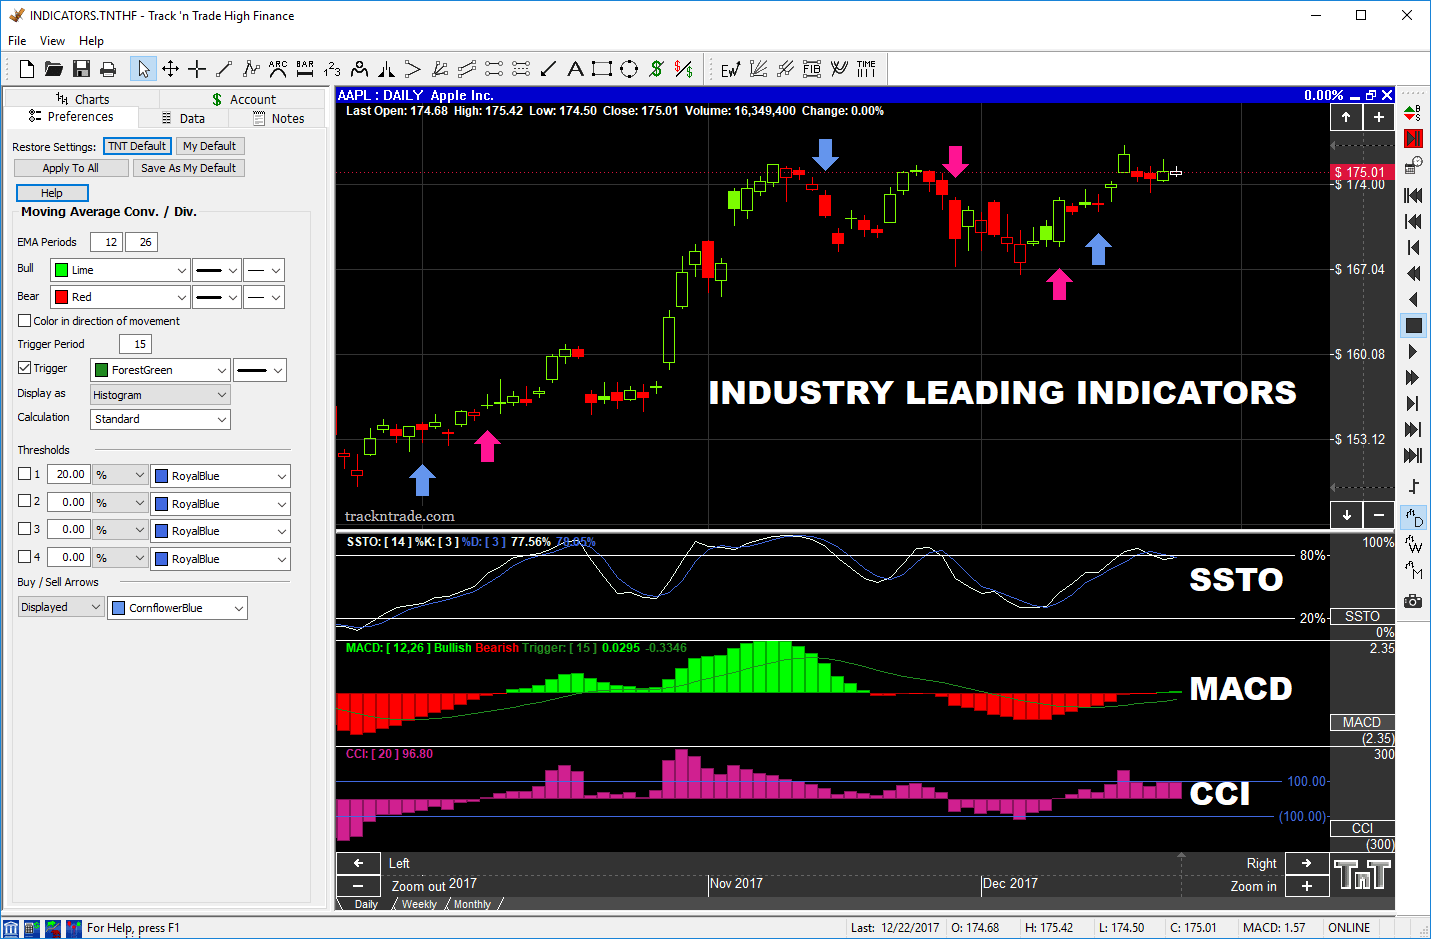 Leading indicators for futures trading